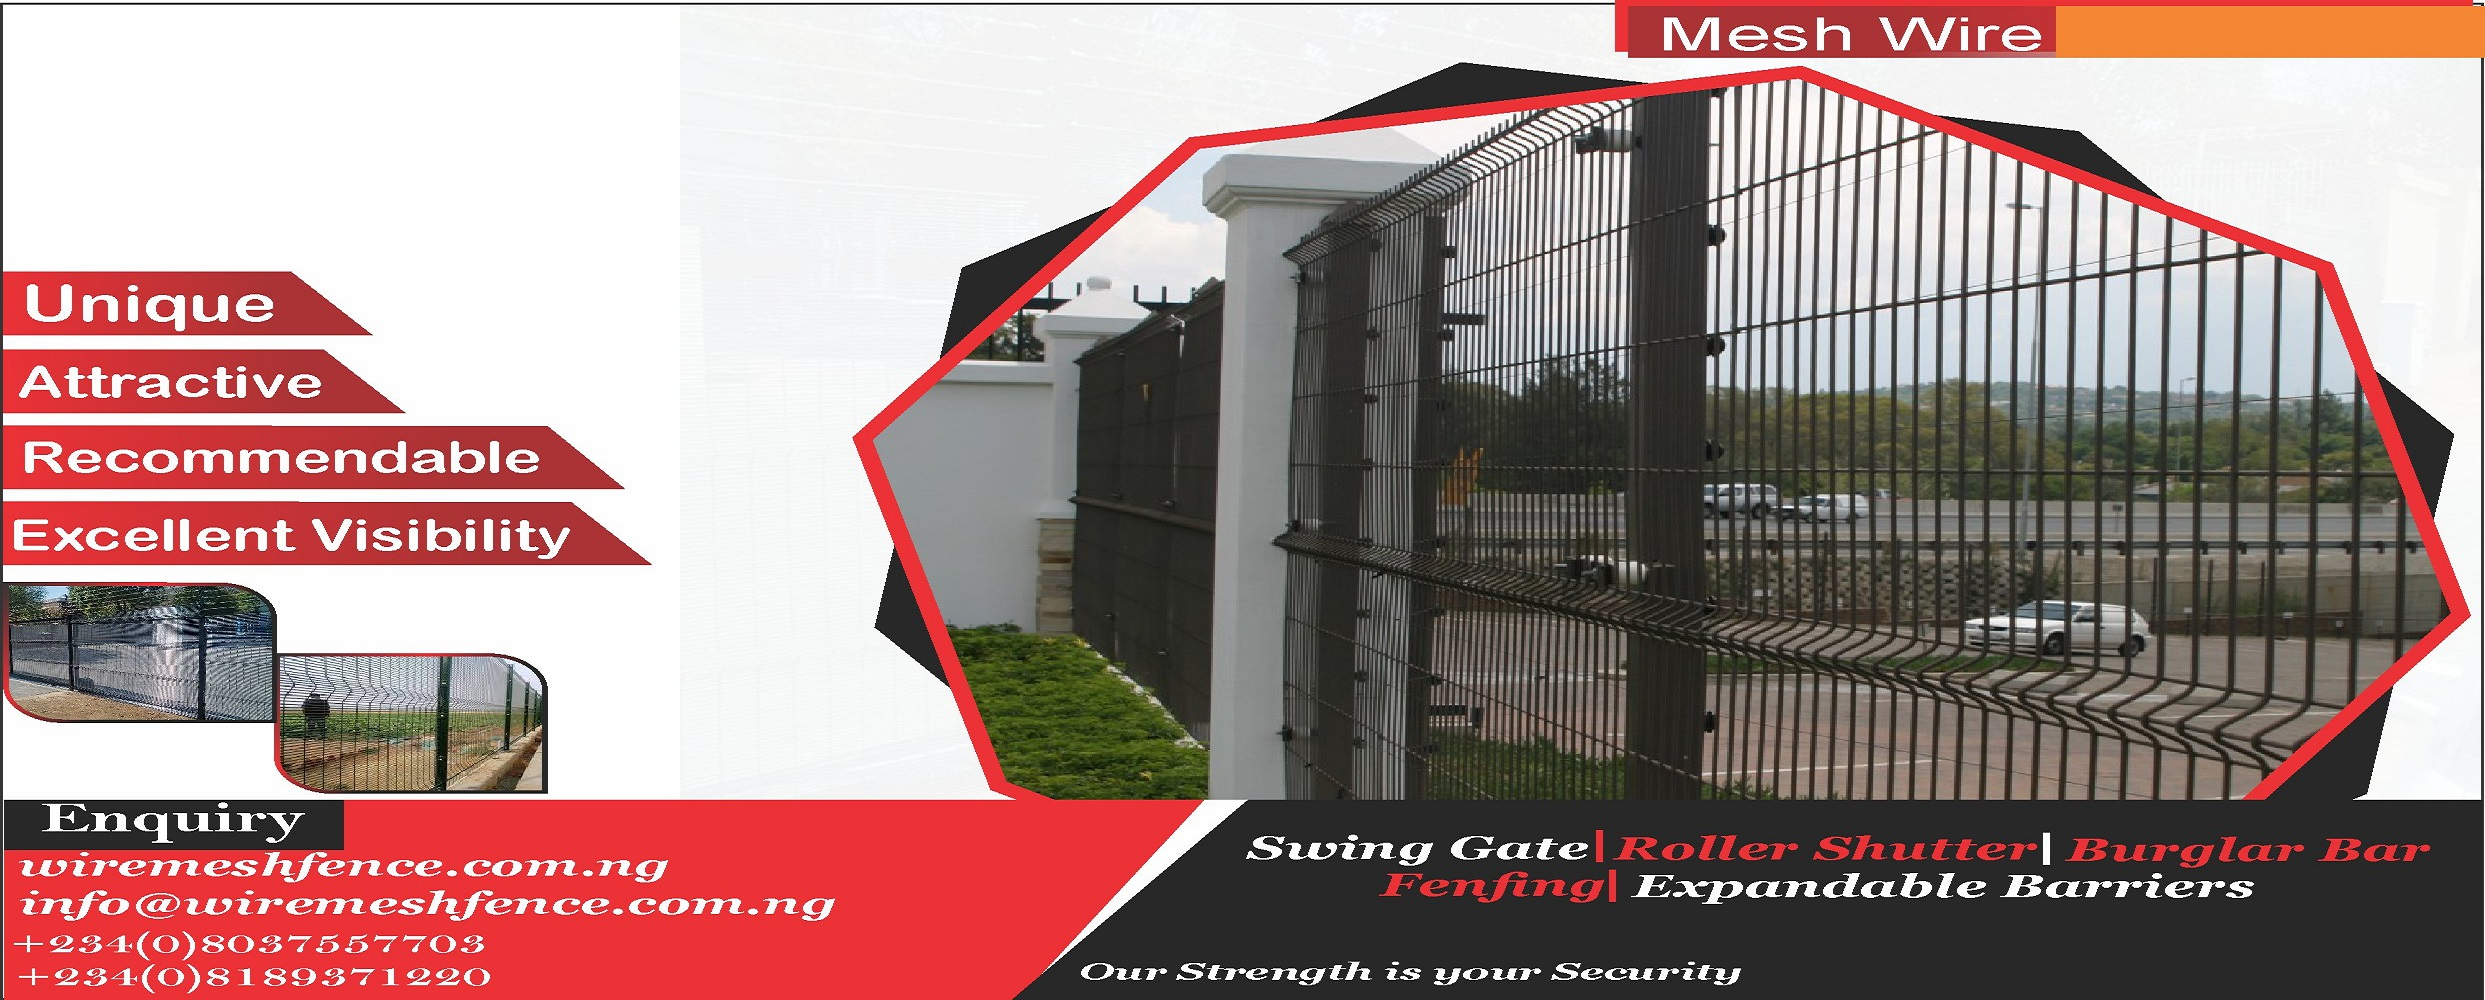 buy wire mesh fence in Nigeria